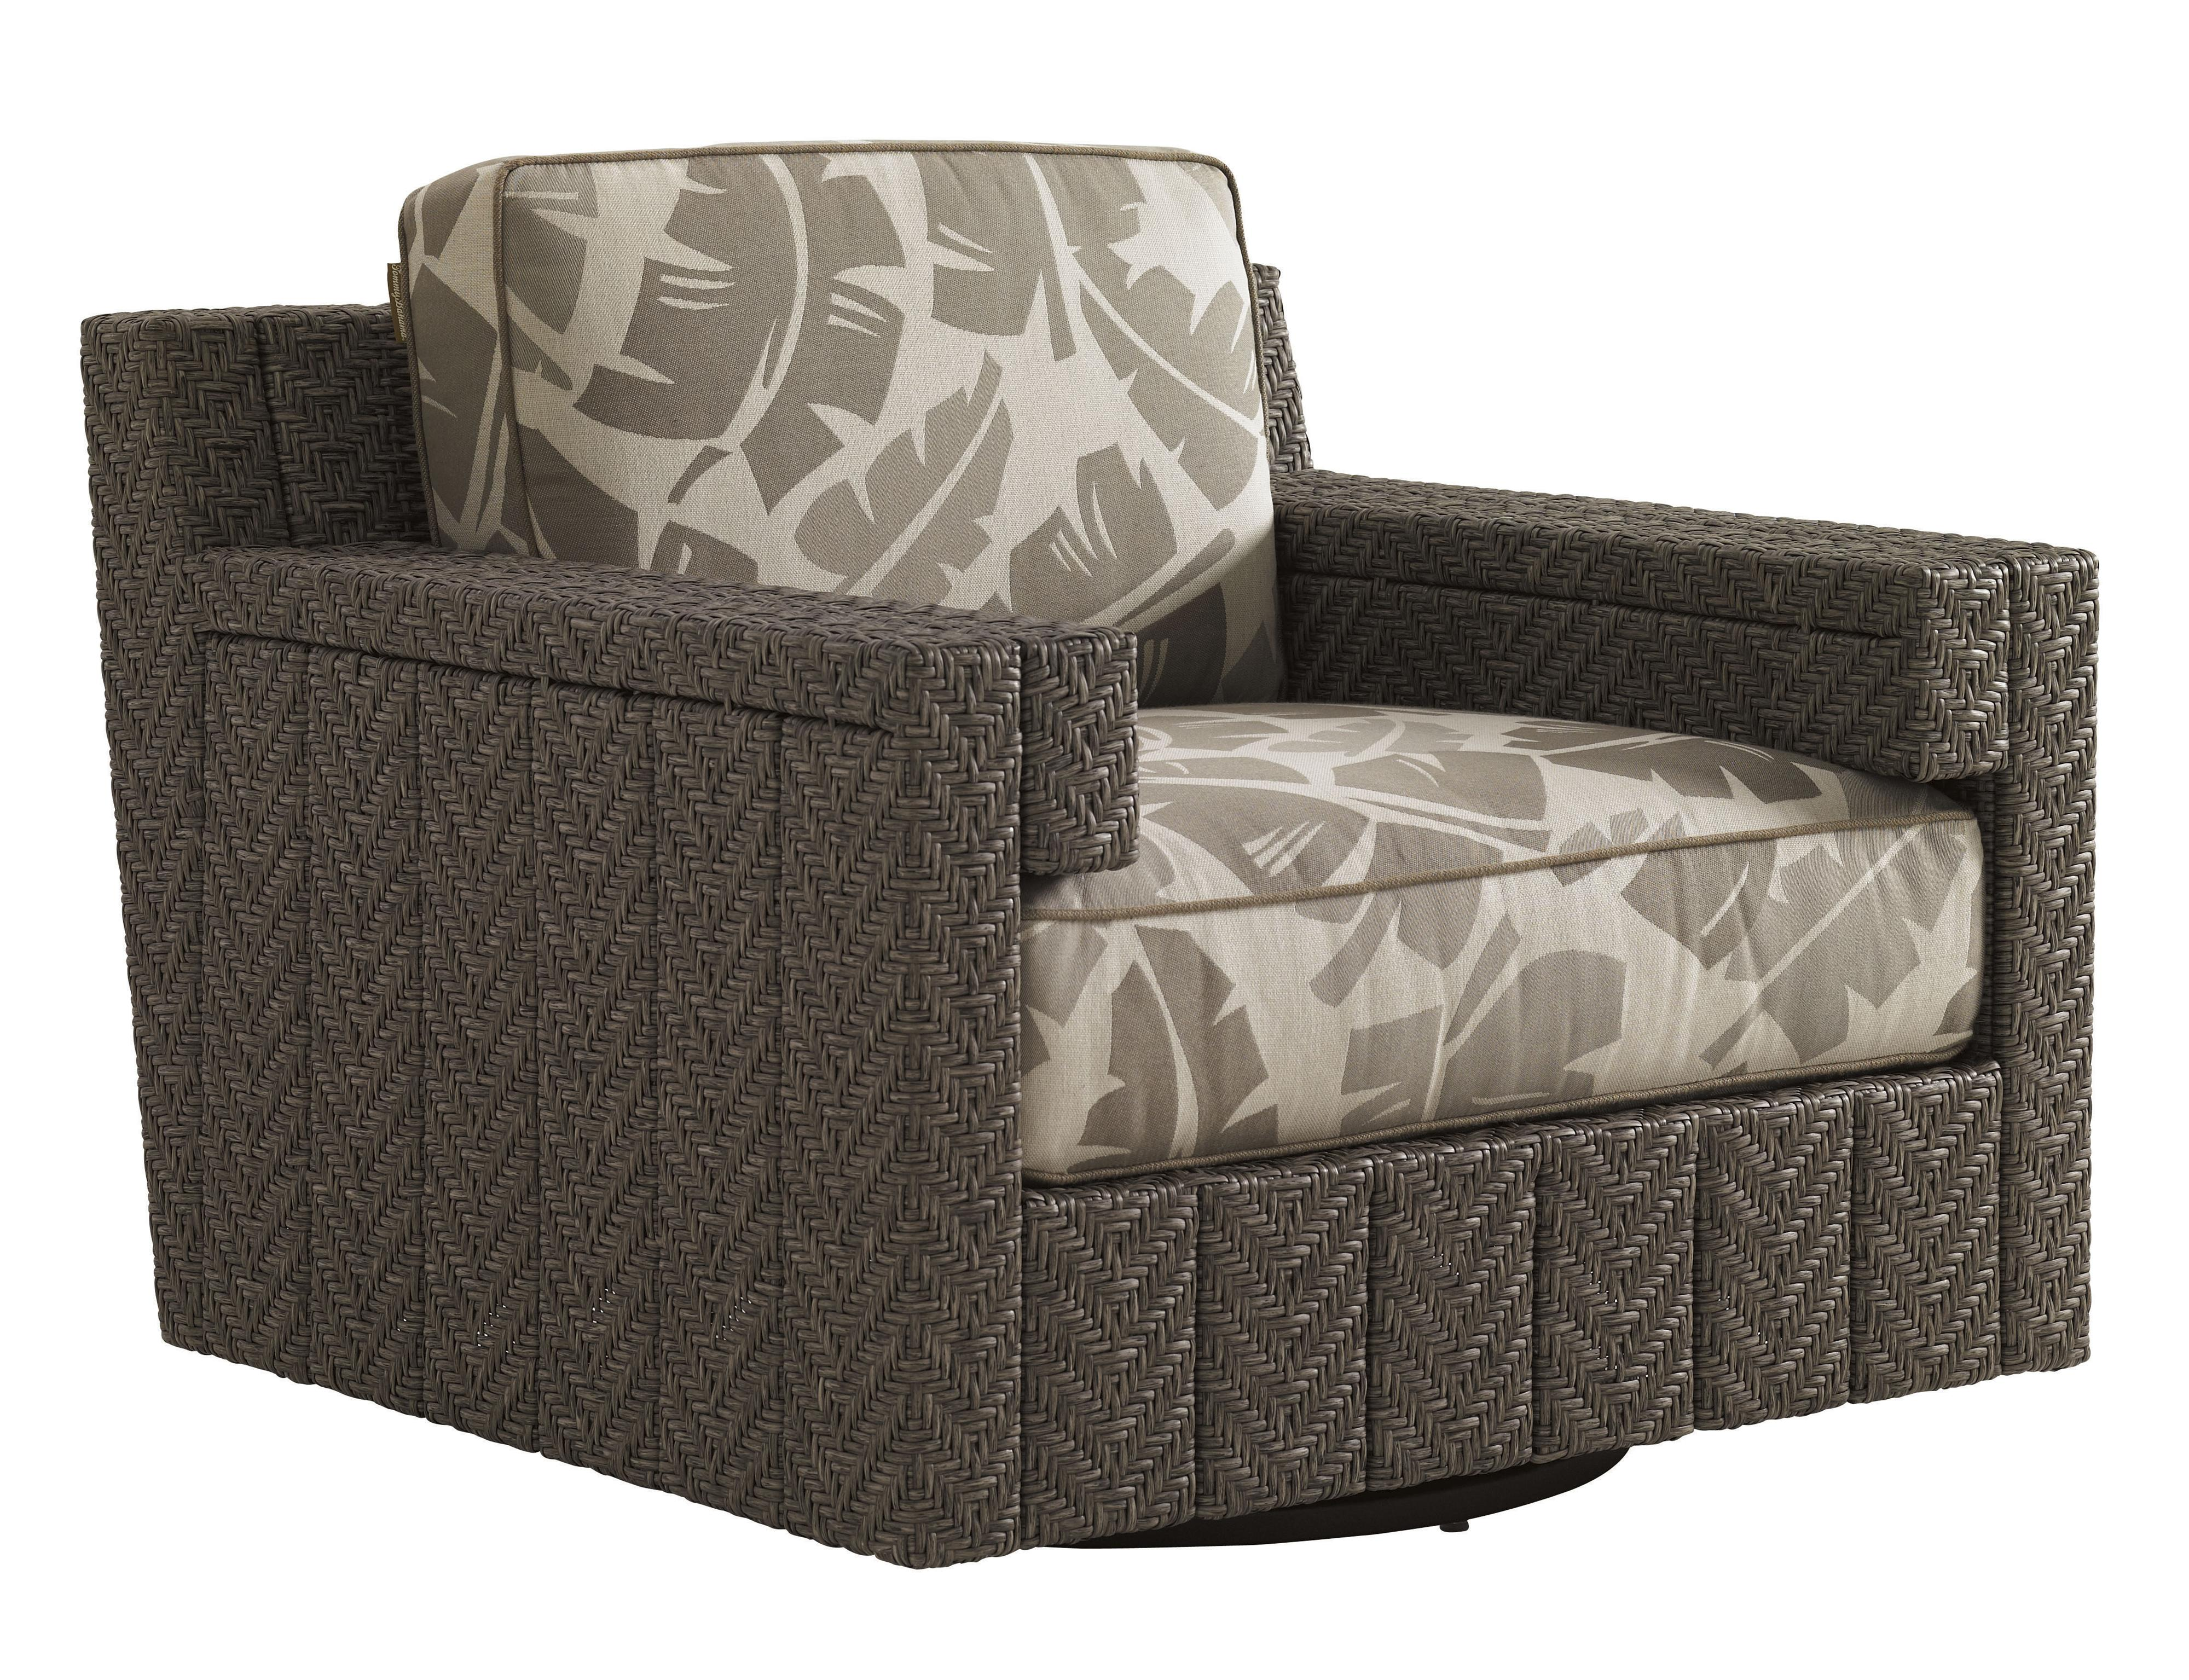 Tommy Bahama Outdoor Living Blue Olive Swivel Glider Chair - Item Number: 3230-11SG+CS3230-11SG